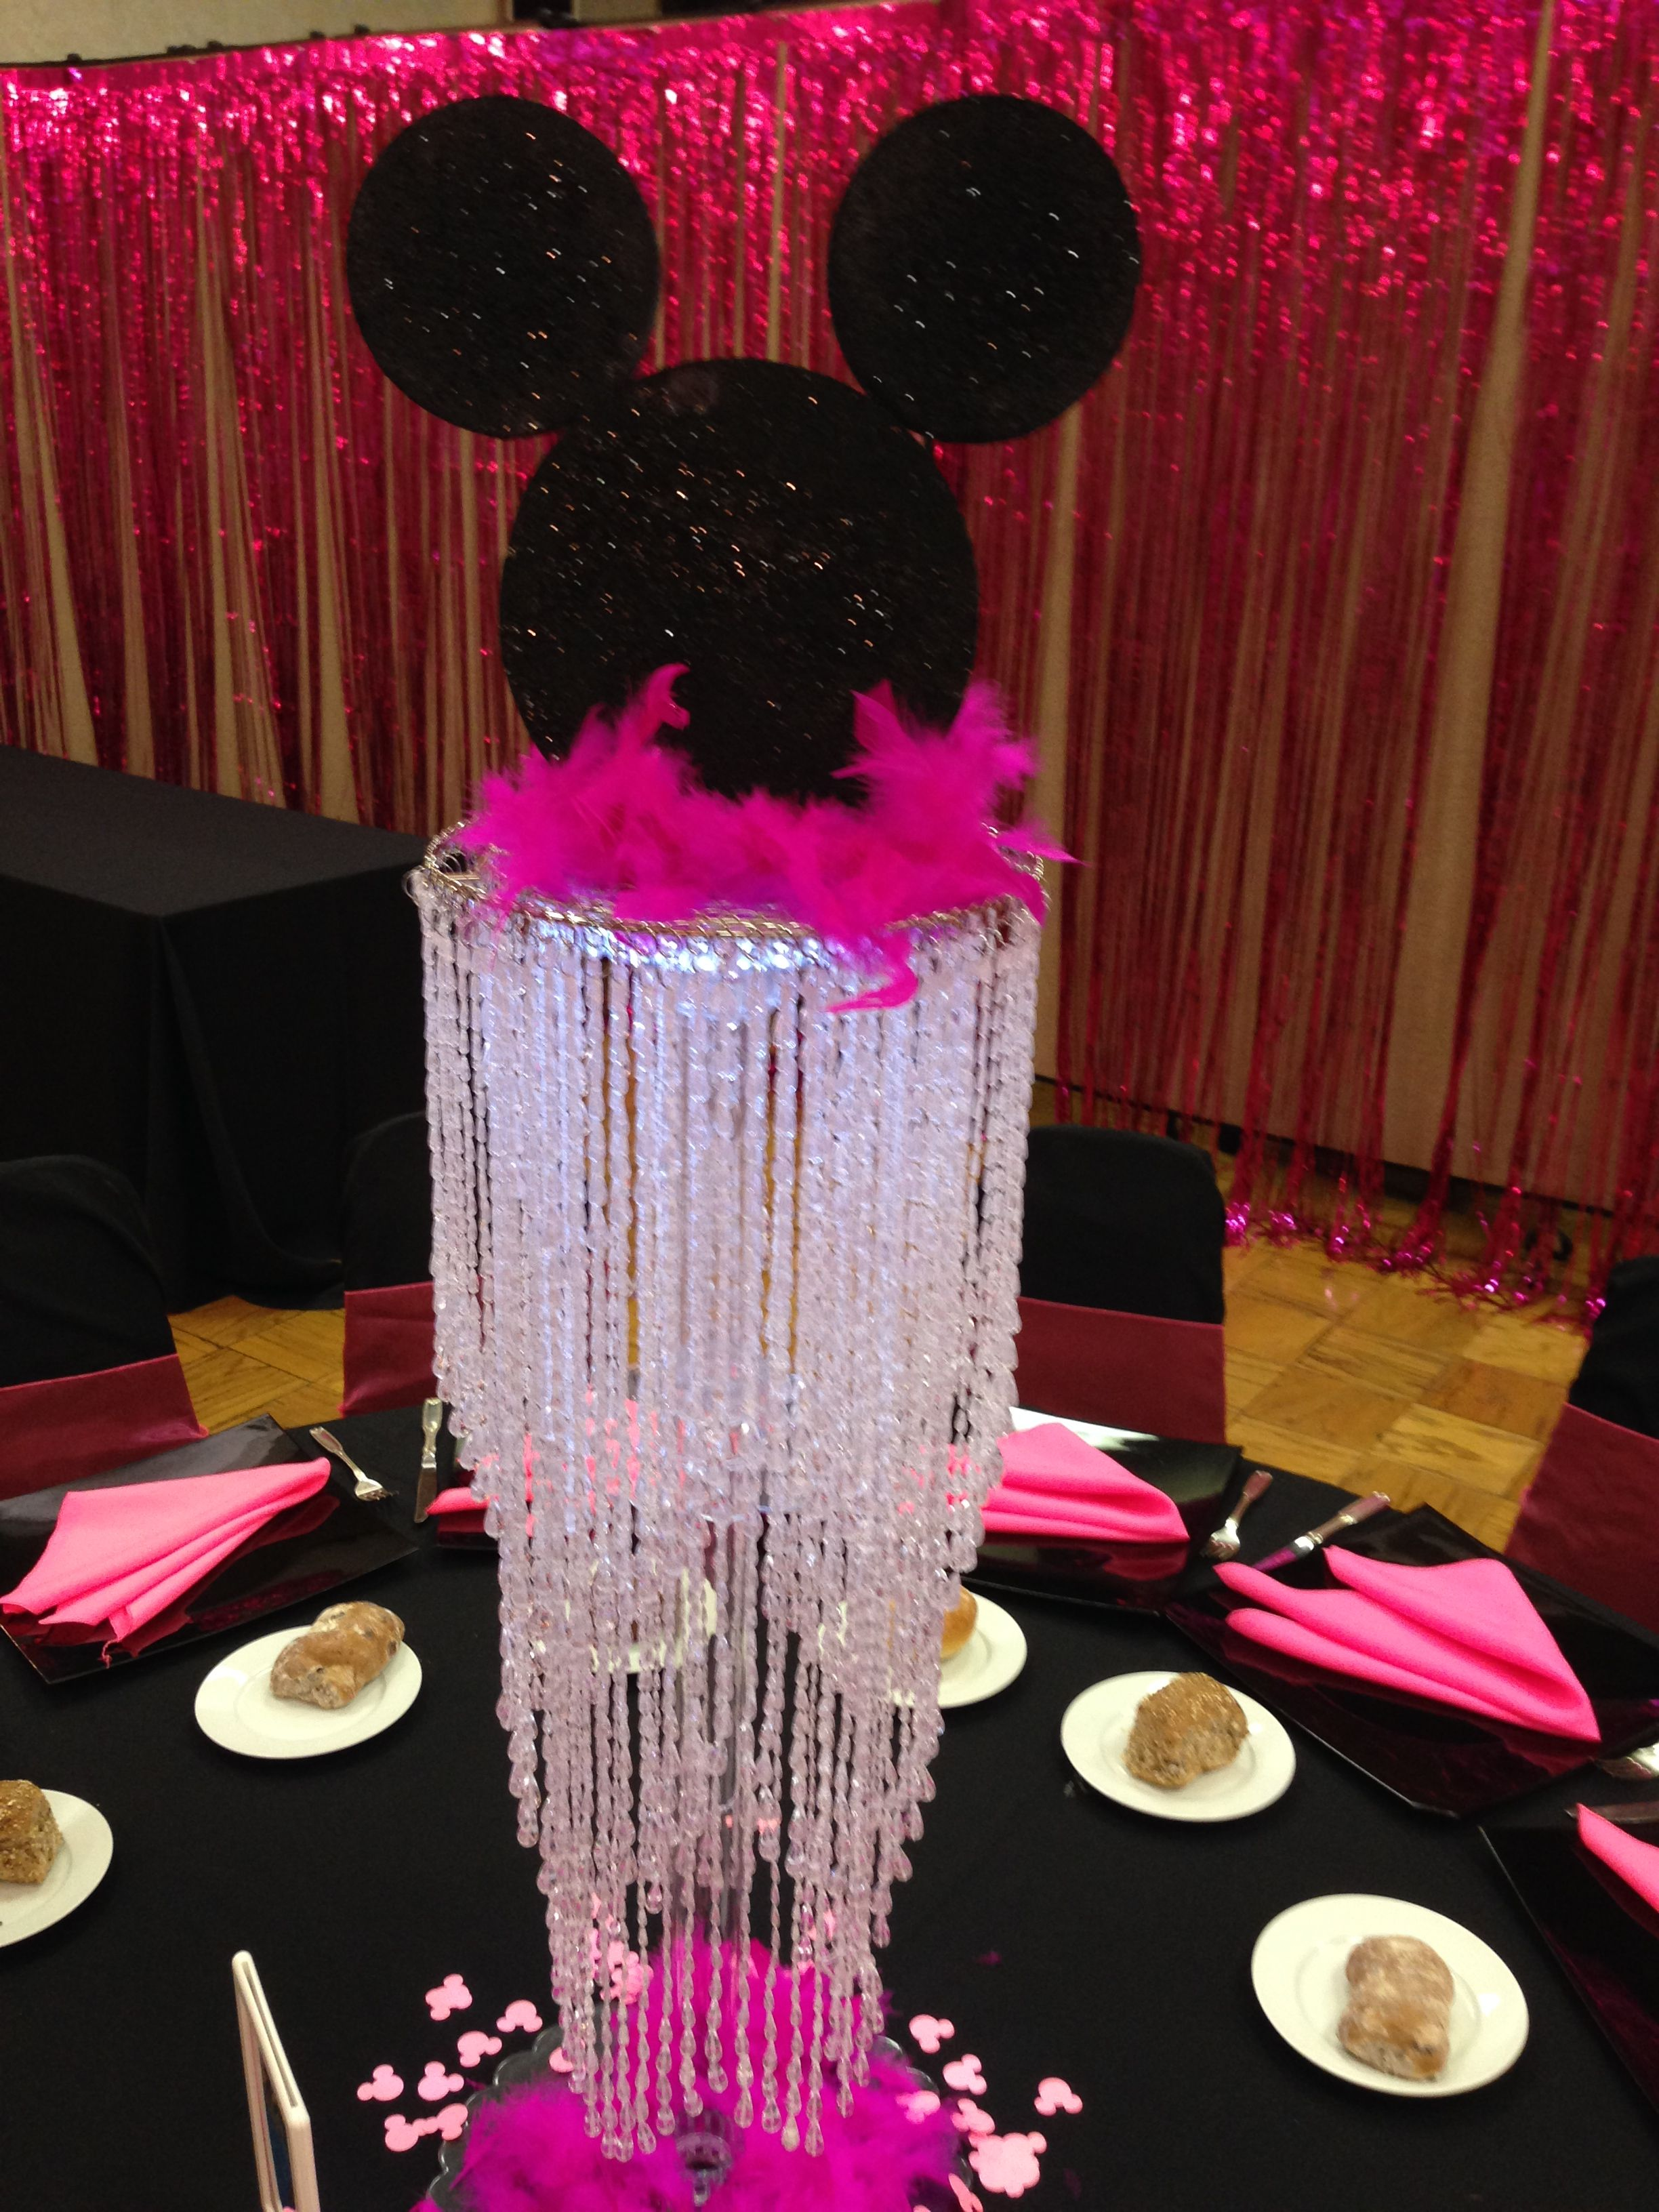 A Centerpiece From The Happiest Bat Mitzvah On Earth Disney Centerpiece Elevated Both Literally Pearl Birthday Party Bat Mitzvah Party Bar Mitzvah Themes